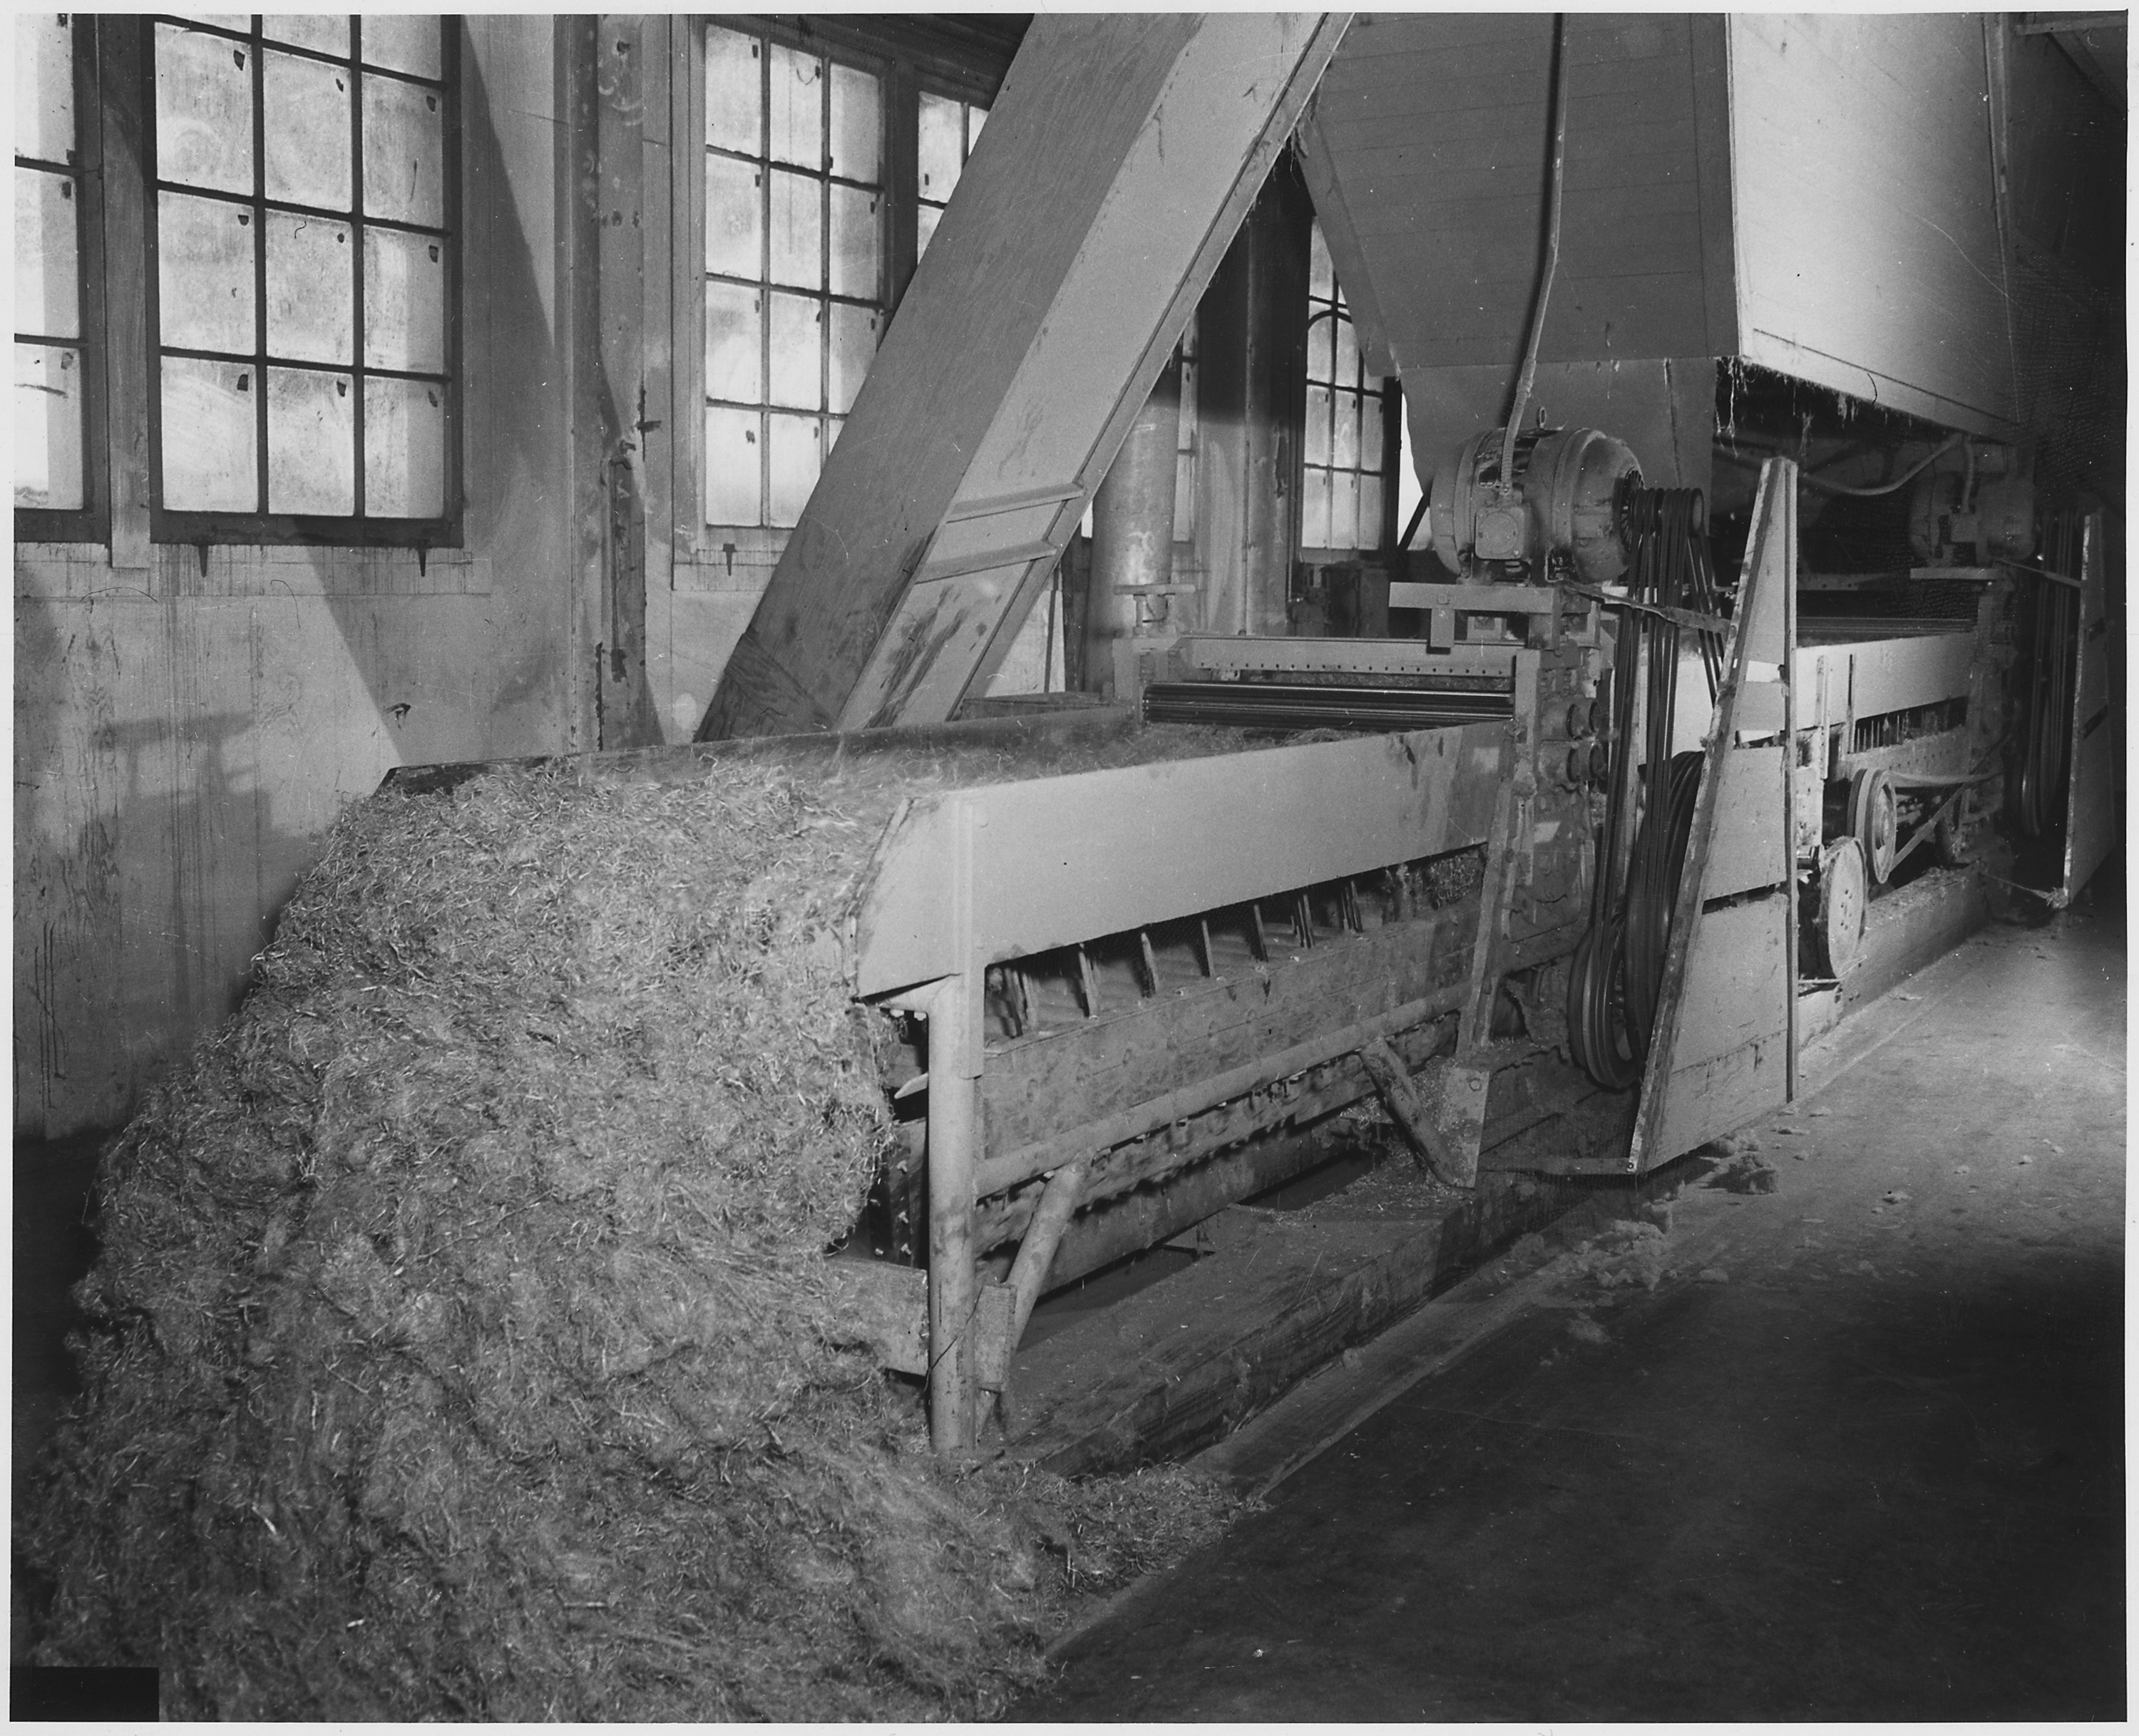 https://upload.wikimedia.org/wikipedia/commons/8/8b/Benton_County_flax_mill_automatic_cleaning_machine_-_NARA_-_283917.jpg